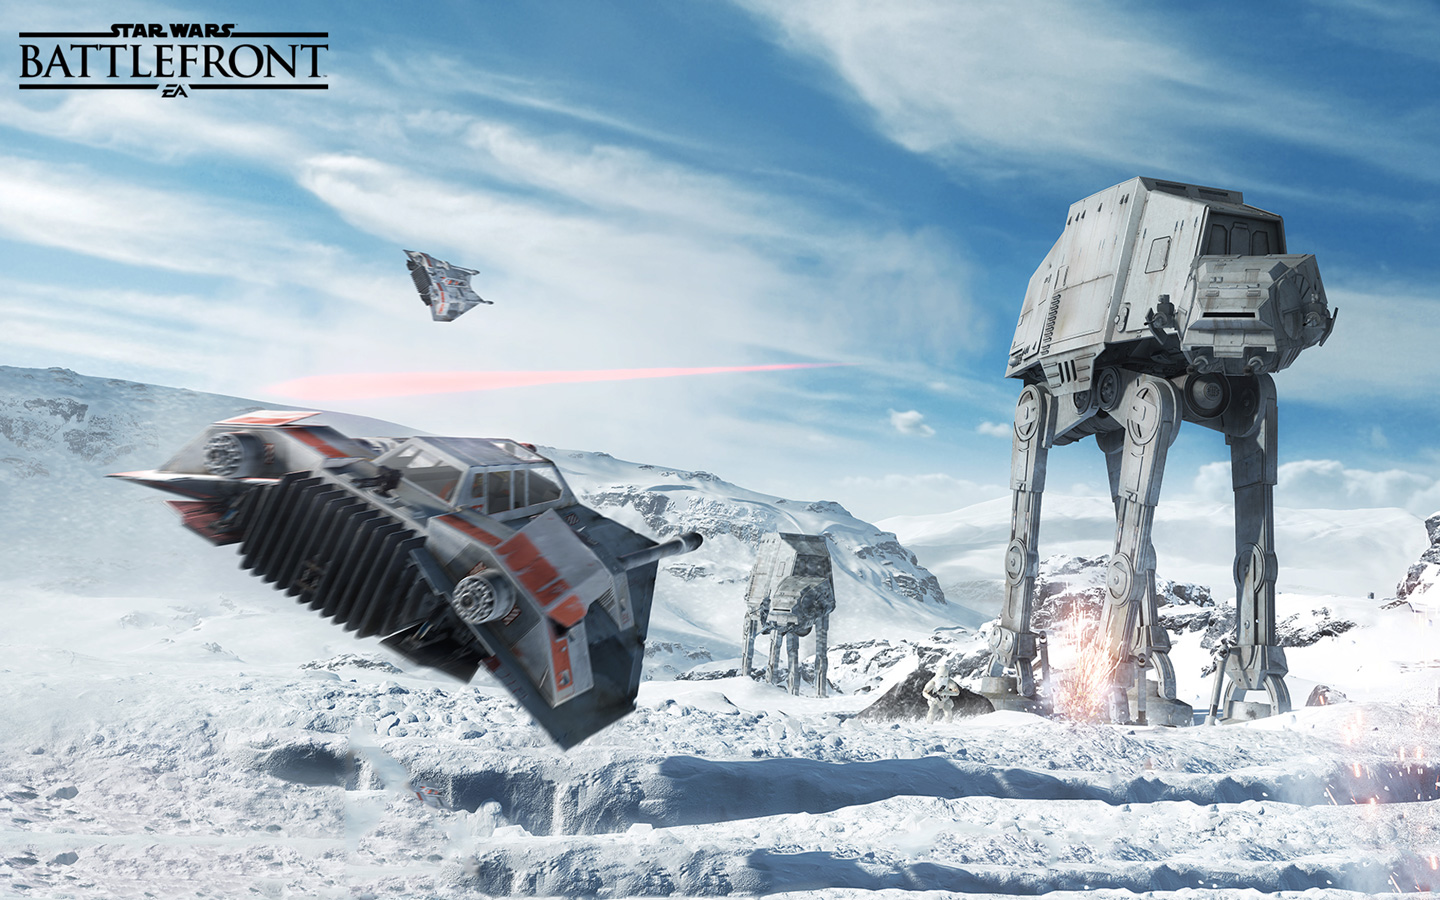 Free Star Wars: Battlefront Wallpaper in 1440x900